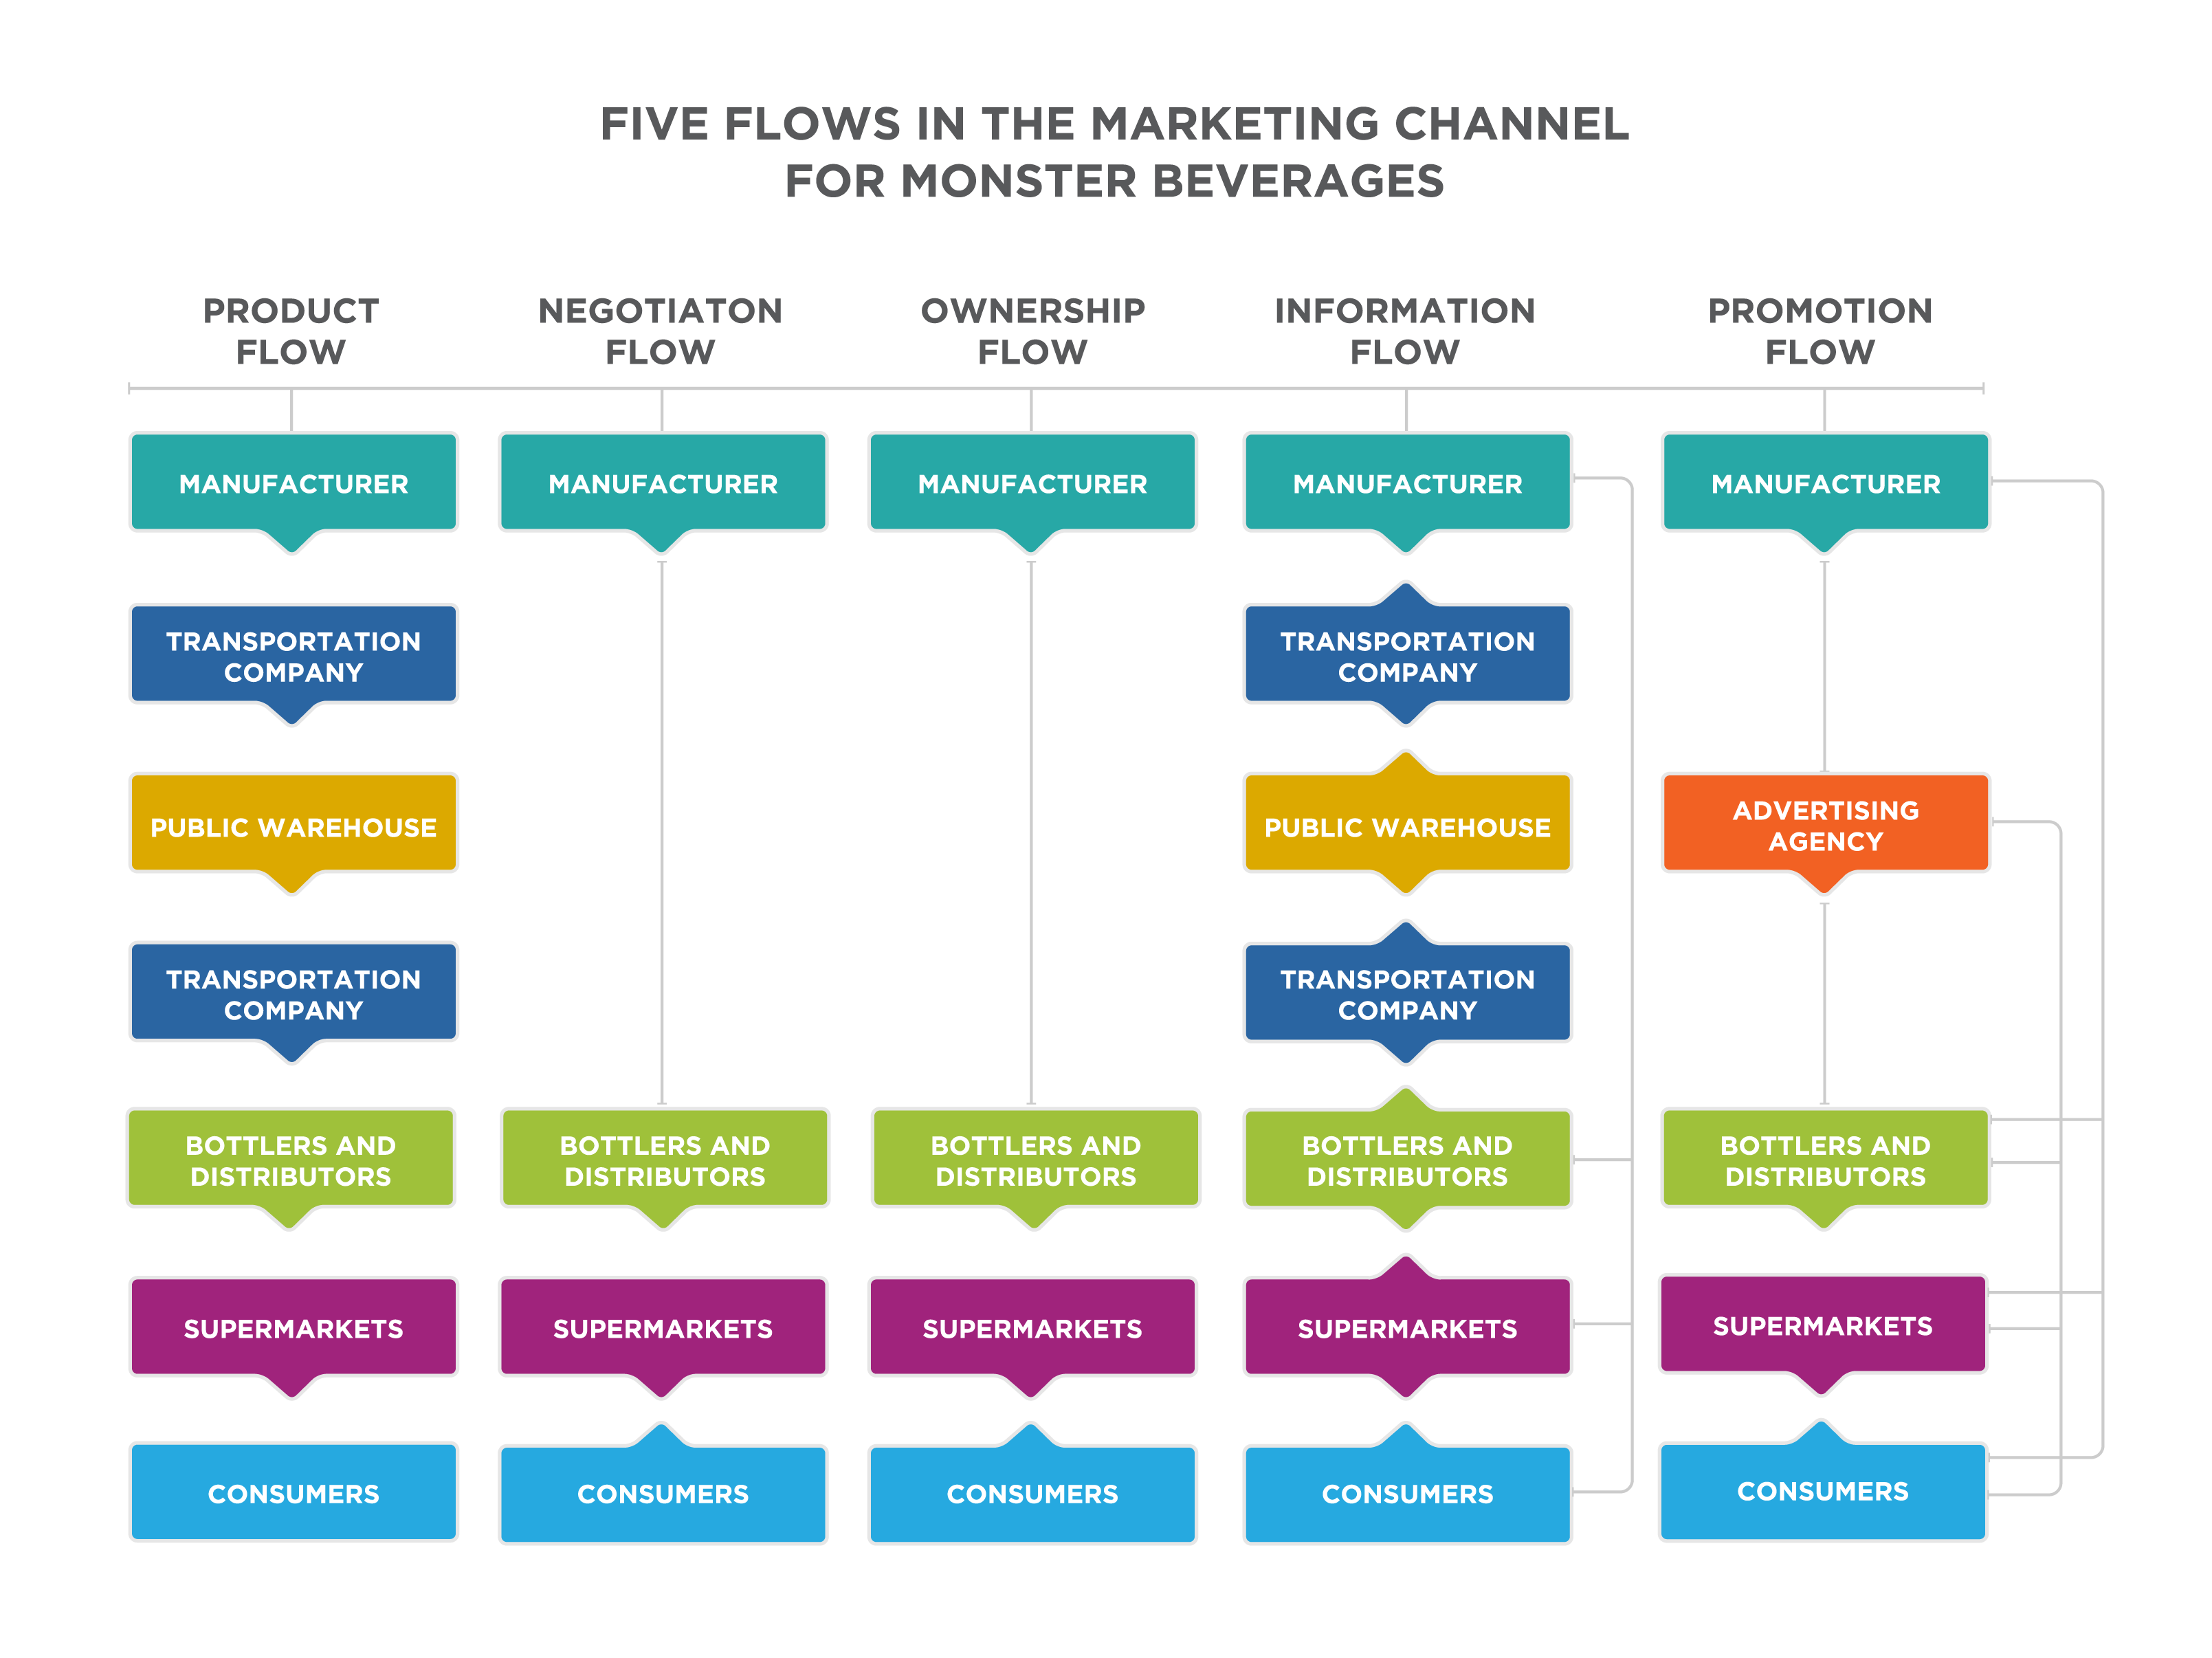 promotional channels In this article we will look at 1) role of promotion in the marketing mix, 2) objectives of promotional activities, 3) major targets of promotional campaigns, 4) the promotional mix, 5) types of promotional strategies, 6) managing promotion through the product life cycle, and 7) an example of the promotion mix in action.